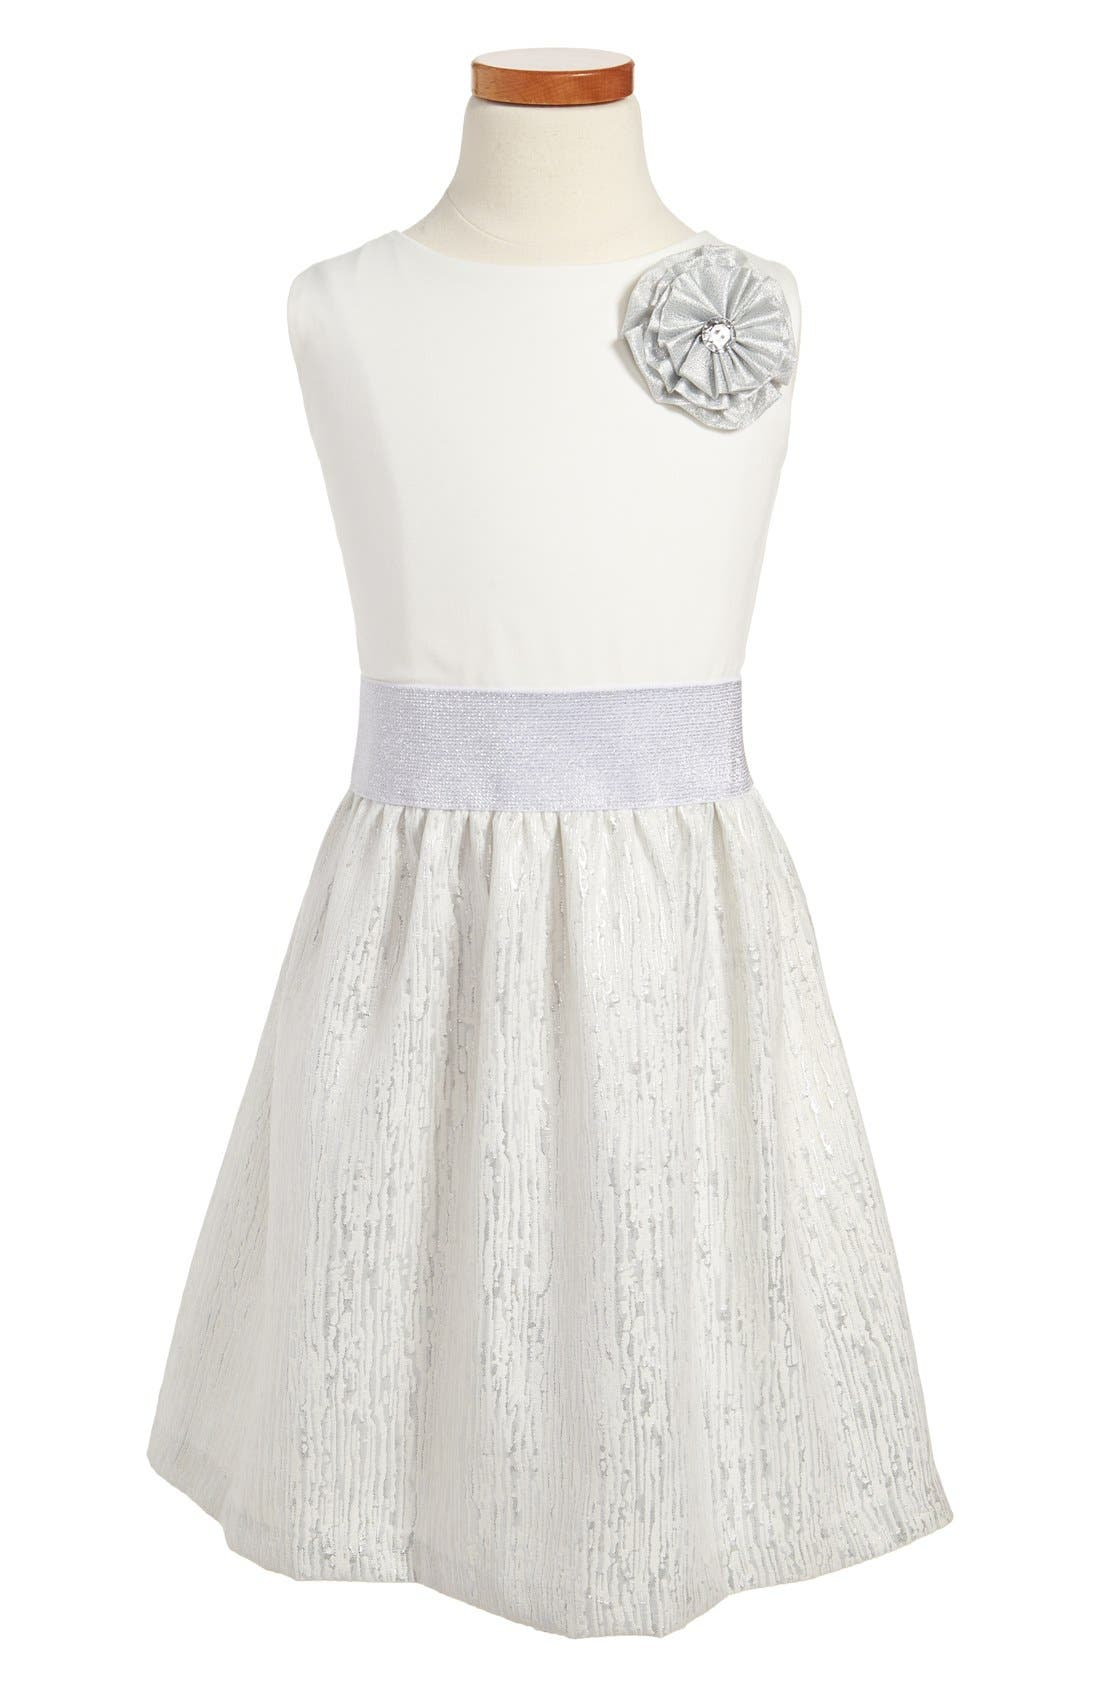 Main Image - ABS by Allen Schwartz 'Gabriella' Sleeveless Dress (Big Girls)